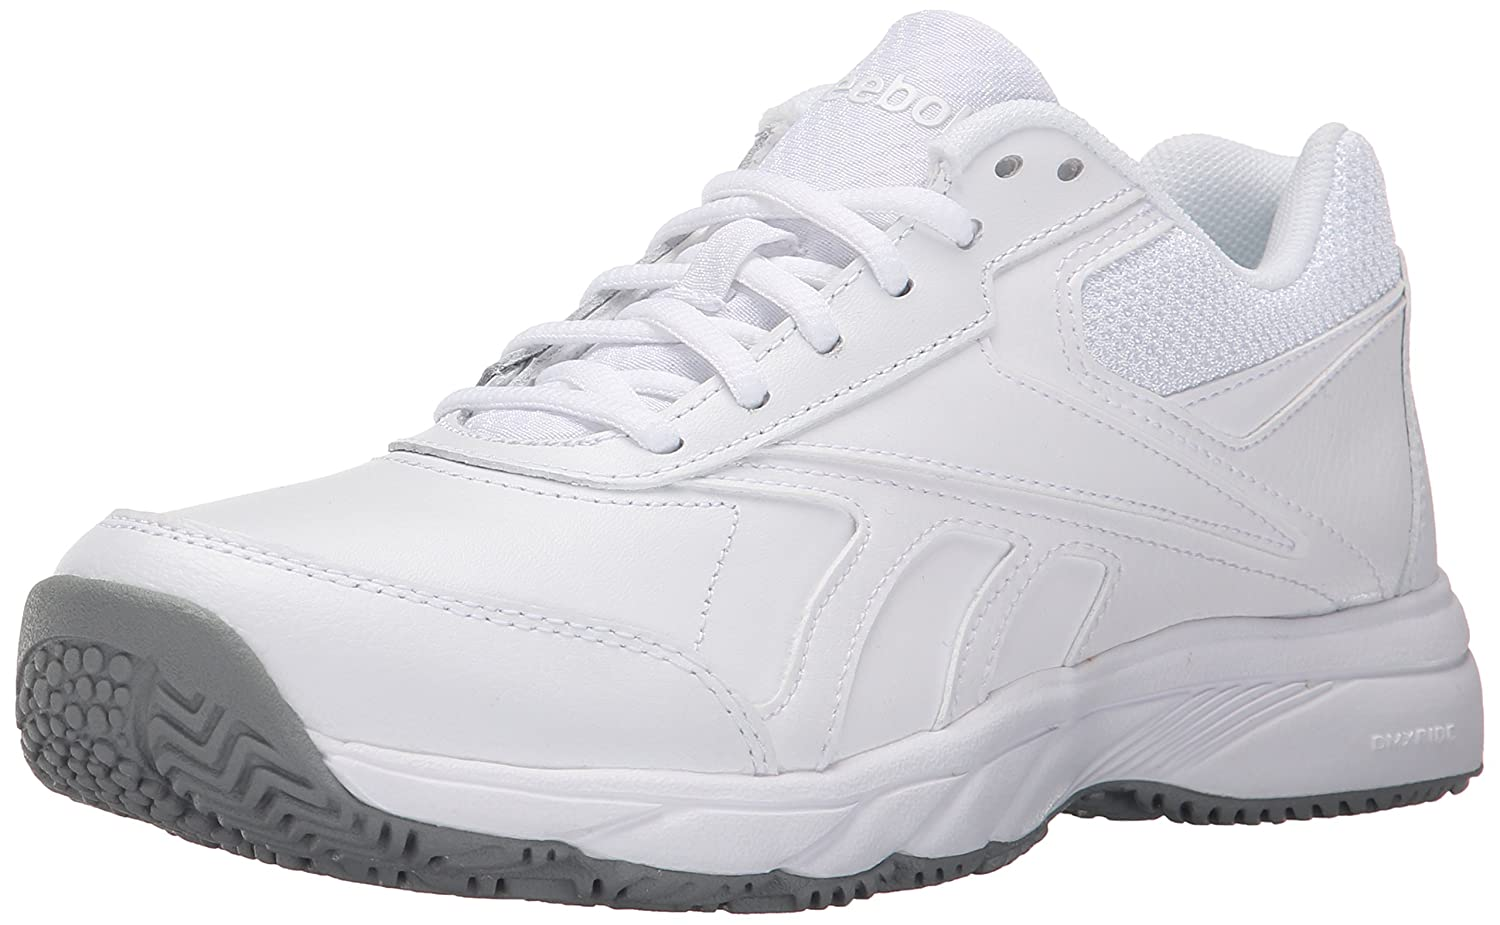 Reebok Women's Work 'N Cushion 2.0 Walking Shoe B010V6LE02 5.5 B(M) US|White/Flat Grey